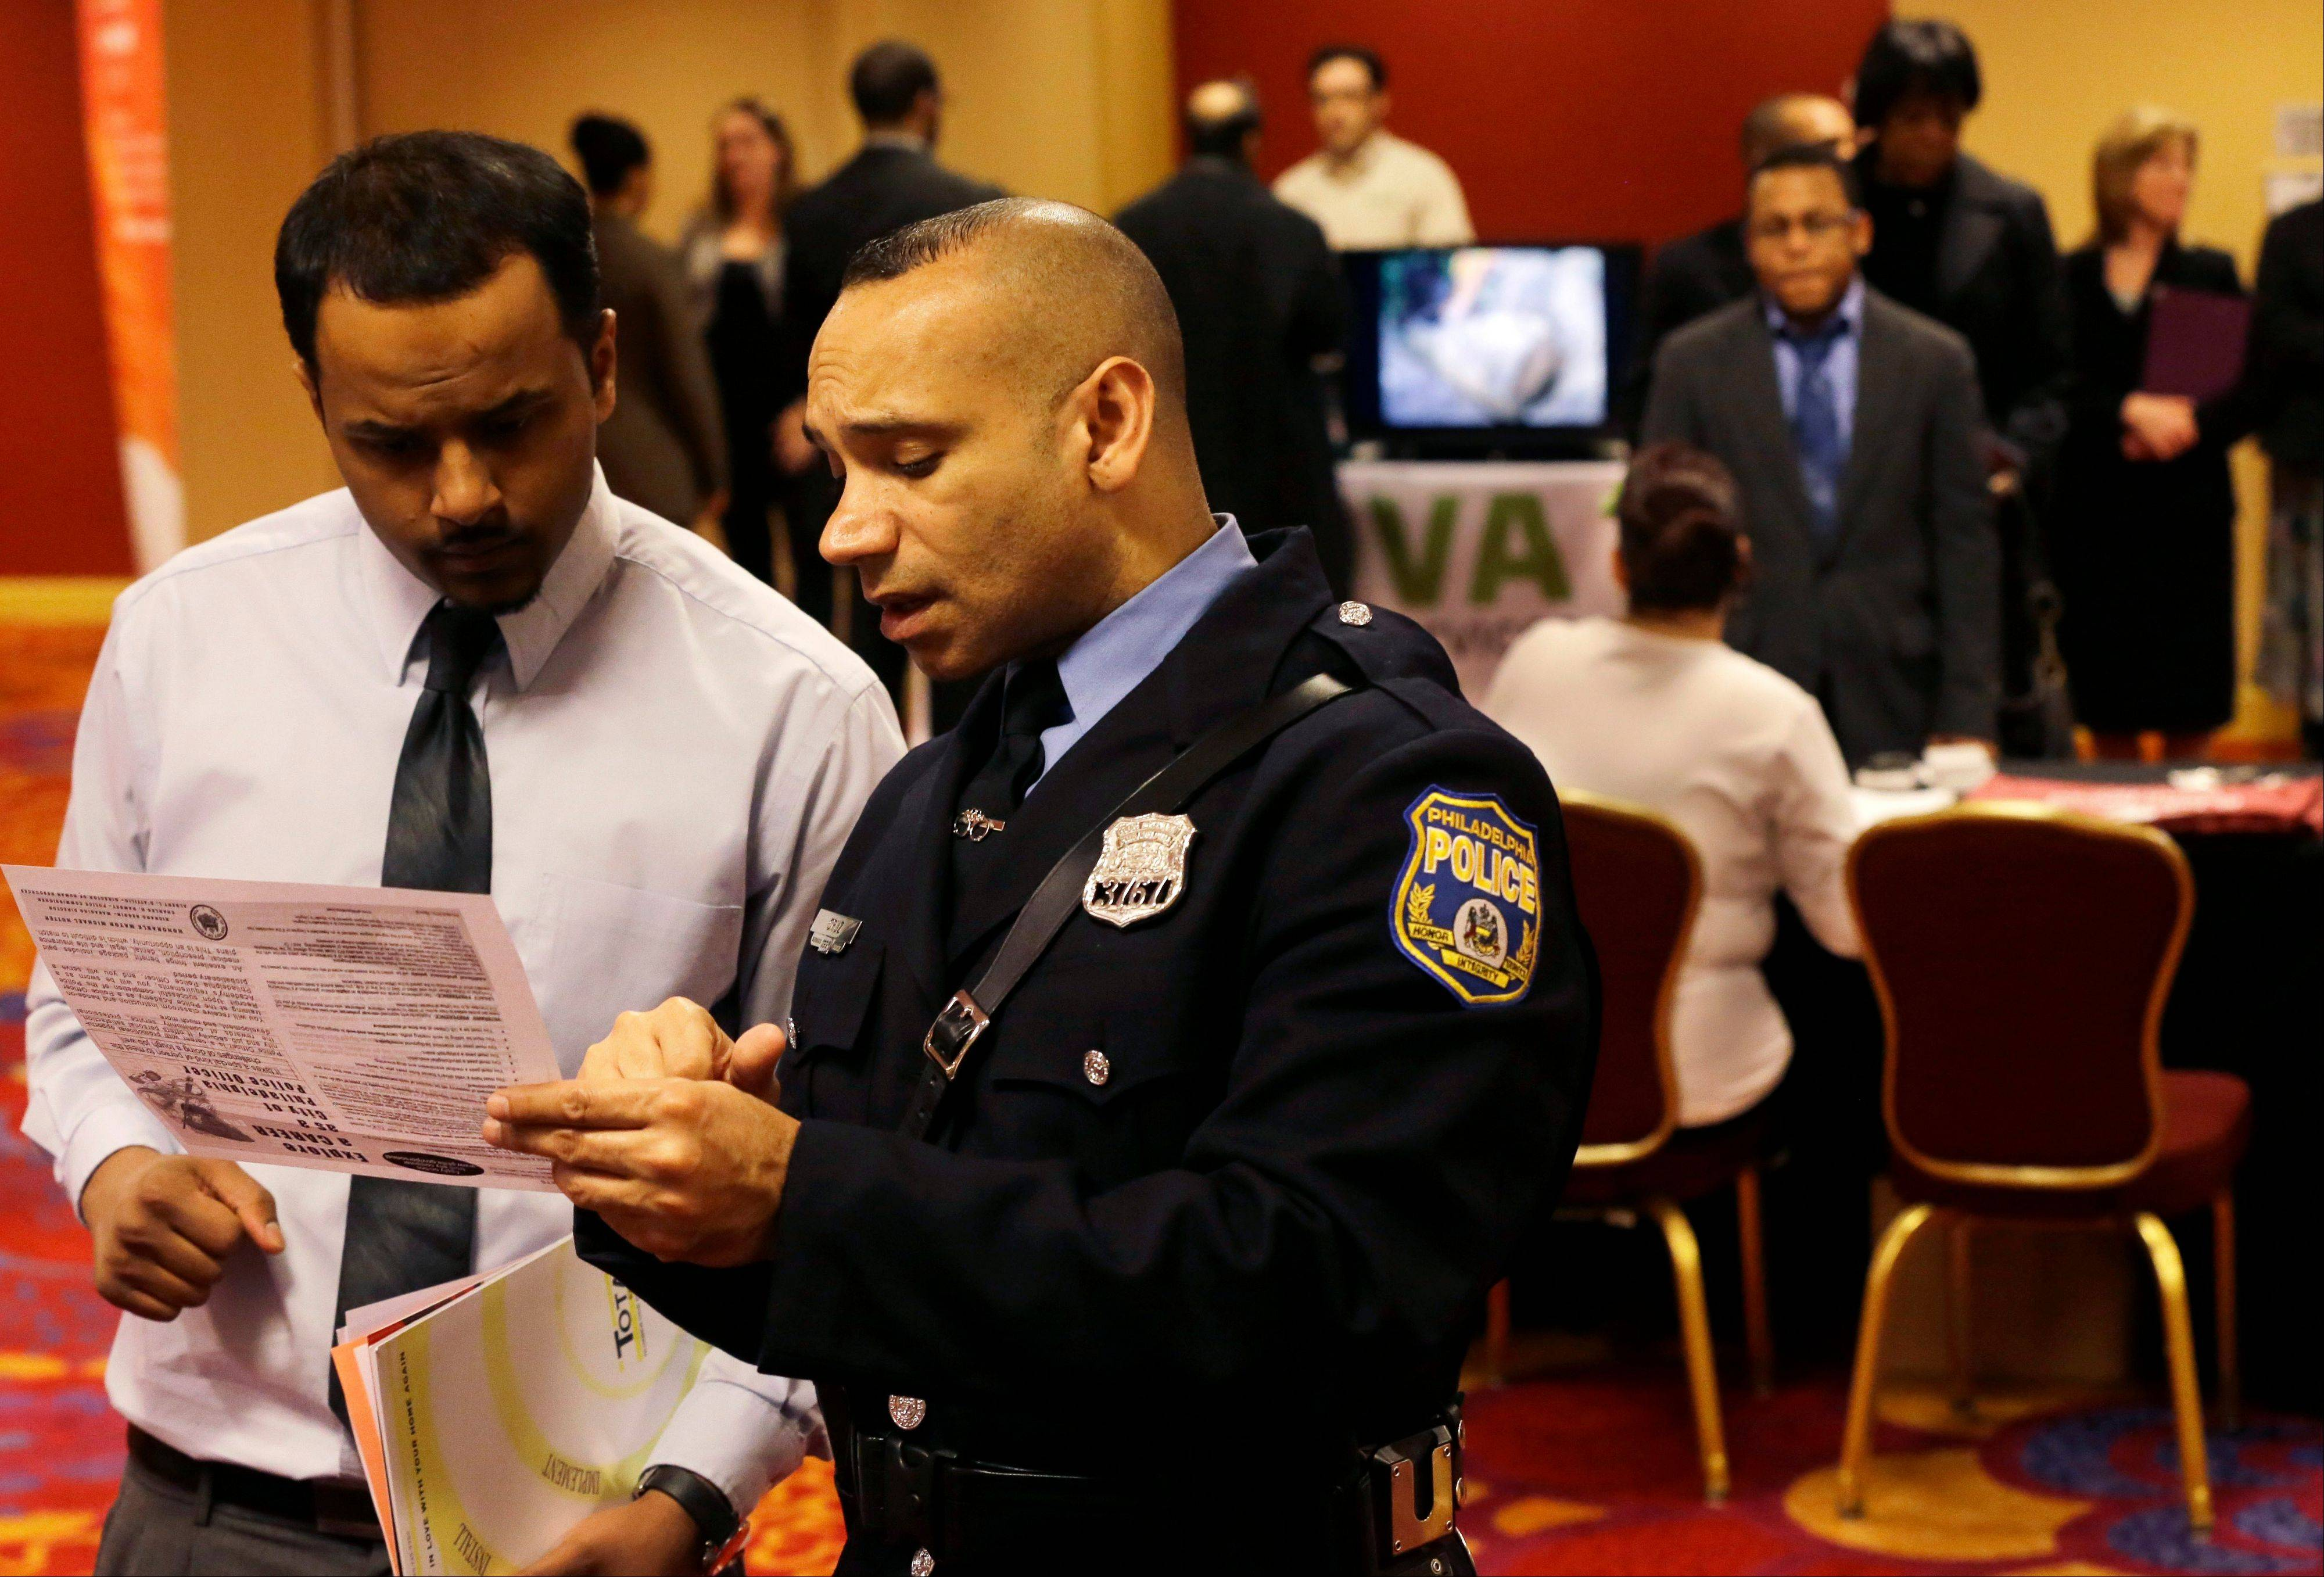 Philadelphia police recruiting officer Samuel Cruz, right, talks with Ismail Azeer of Carteret, N.J., at the Edison Career Fair job fair in the Iselin section of Woodbridge Township, N.J.